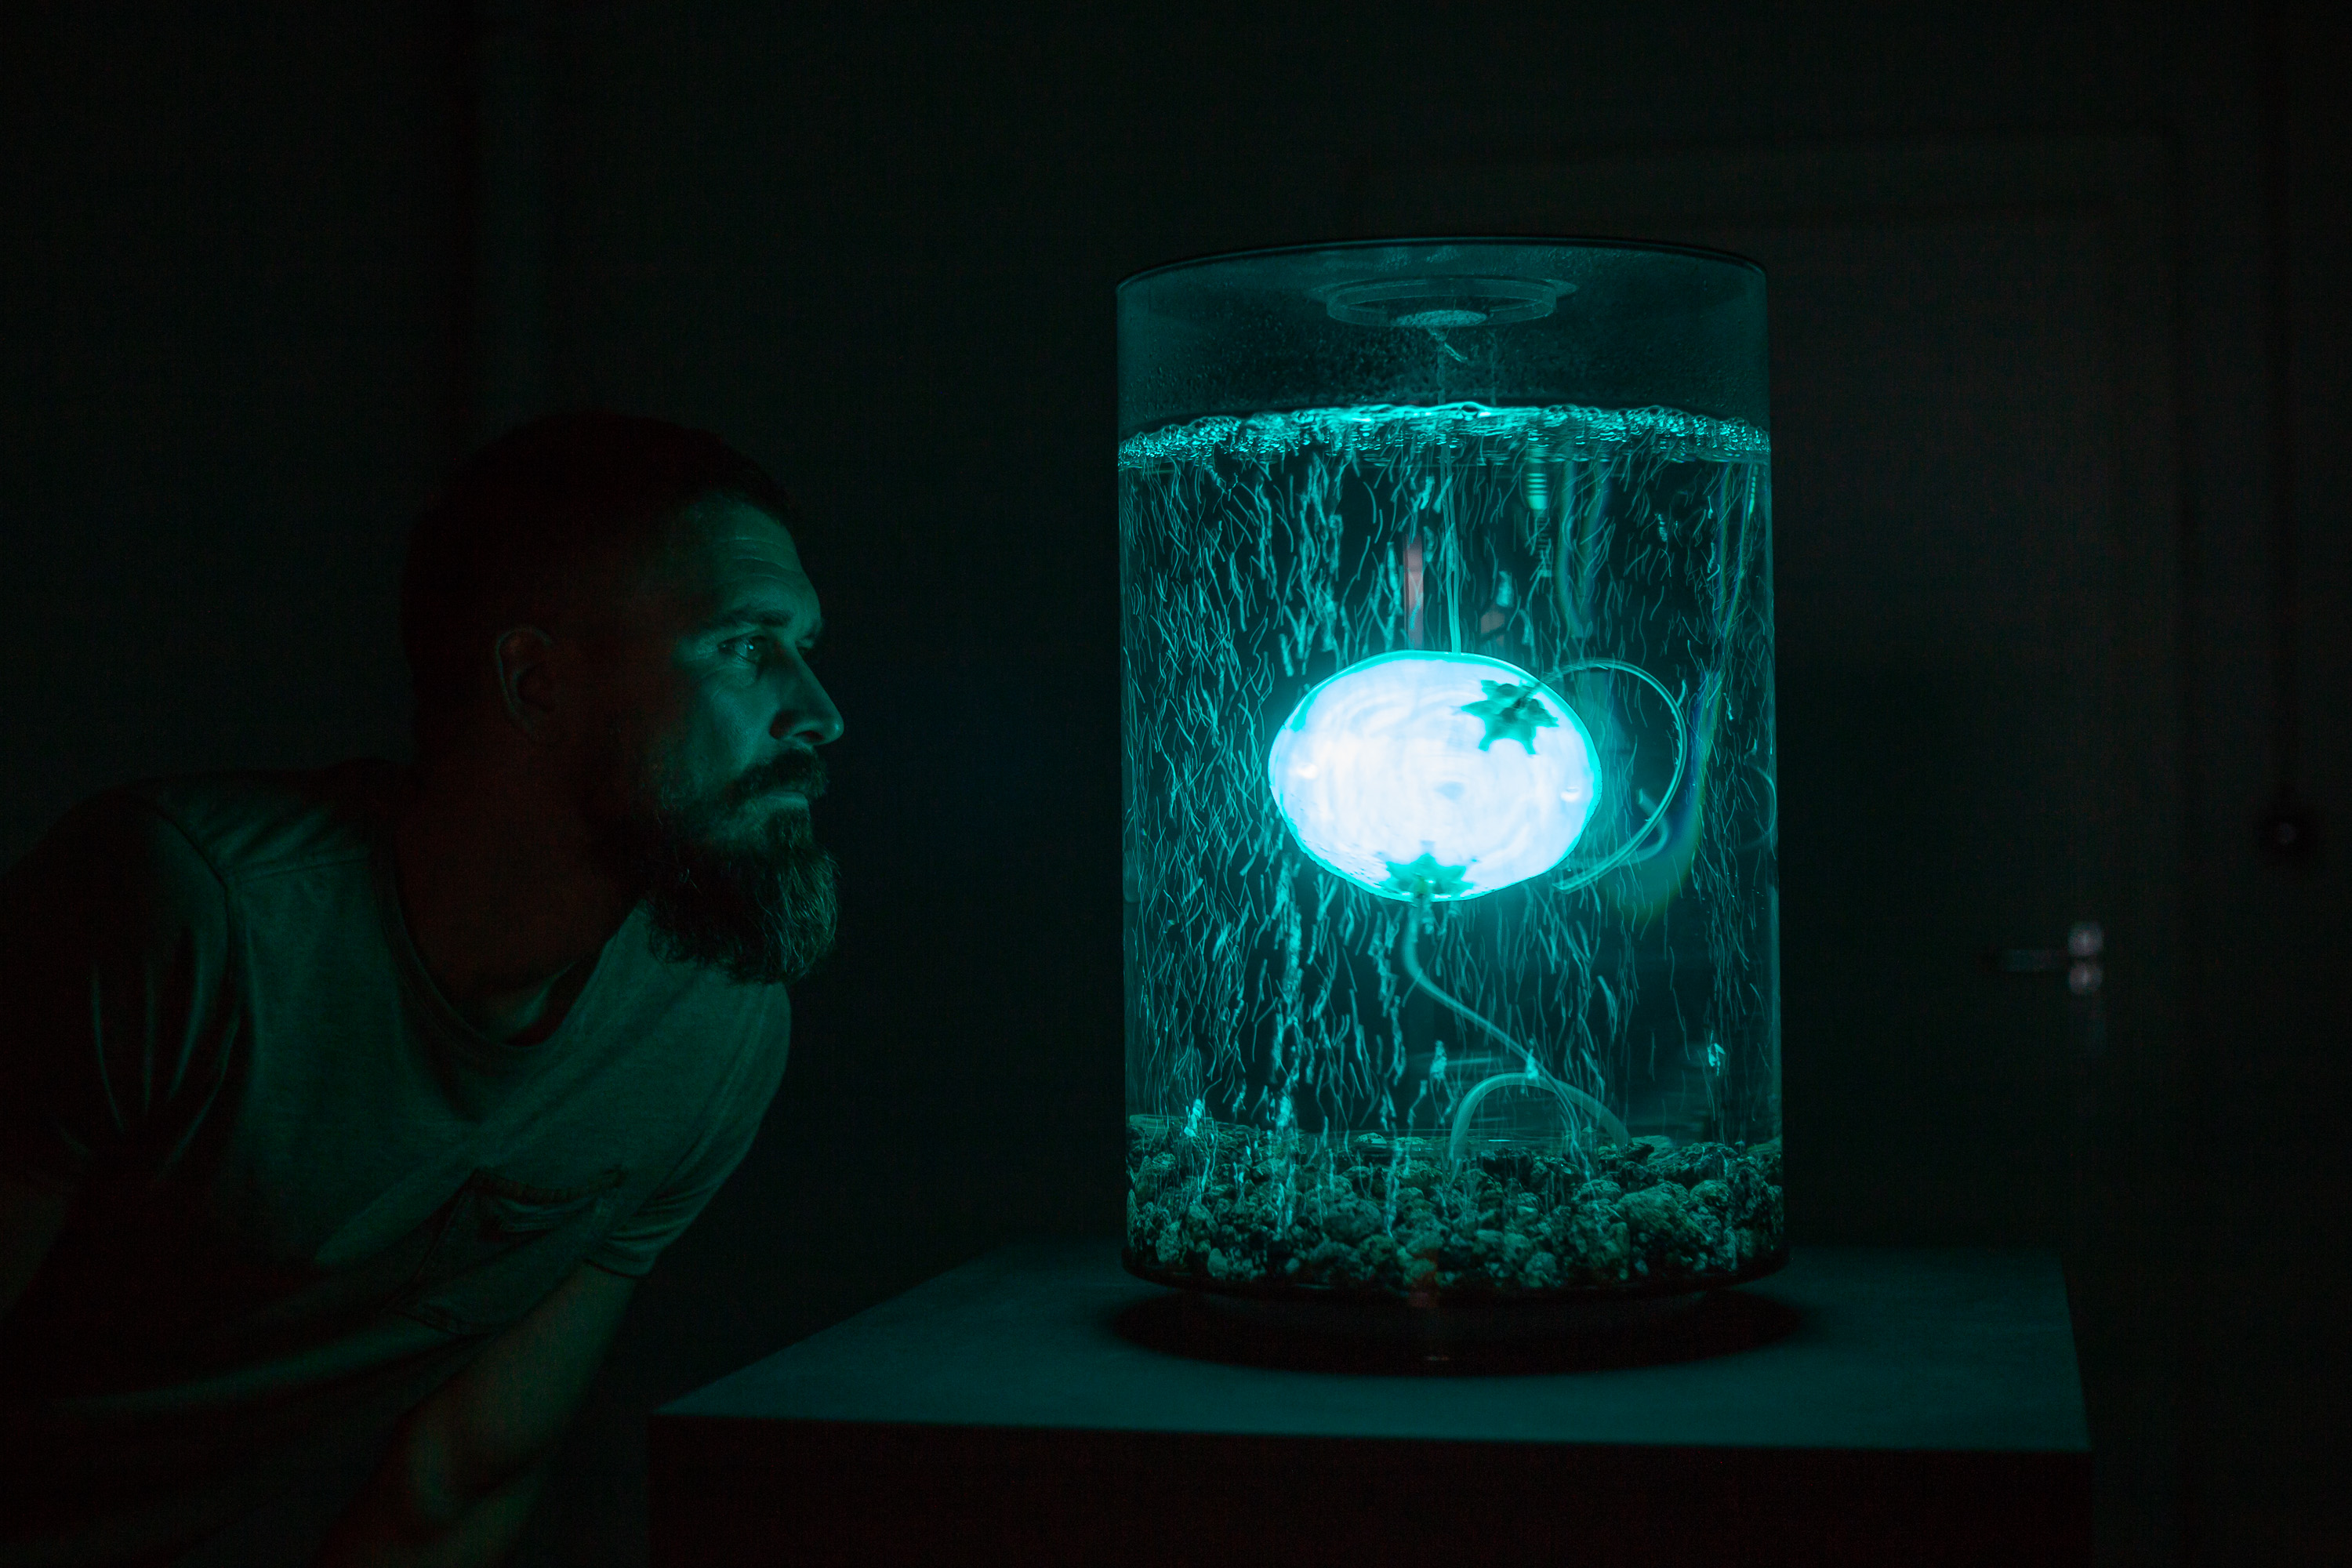 1_ArchaeaBot_by_Anna Dumitriu_and_Alex May_in collaboration_with_scientist_Amanda_Wilson_Imperial_College_Photo_credit_Vanessa Graf_Ars Electronica_2018.jpg